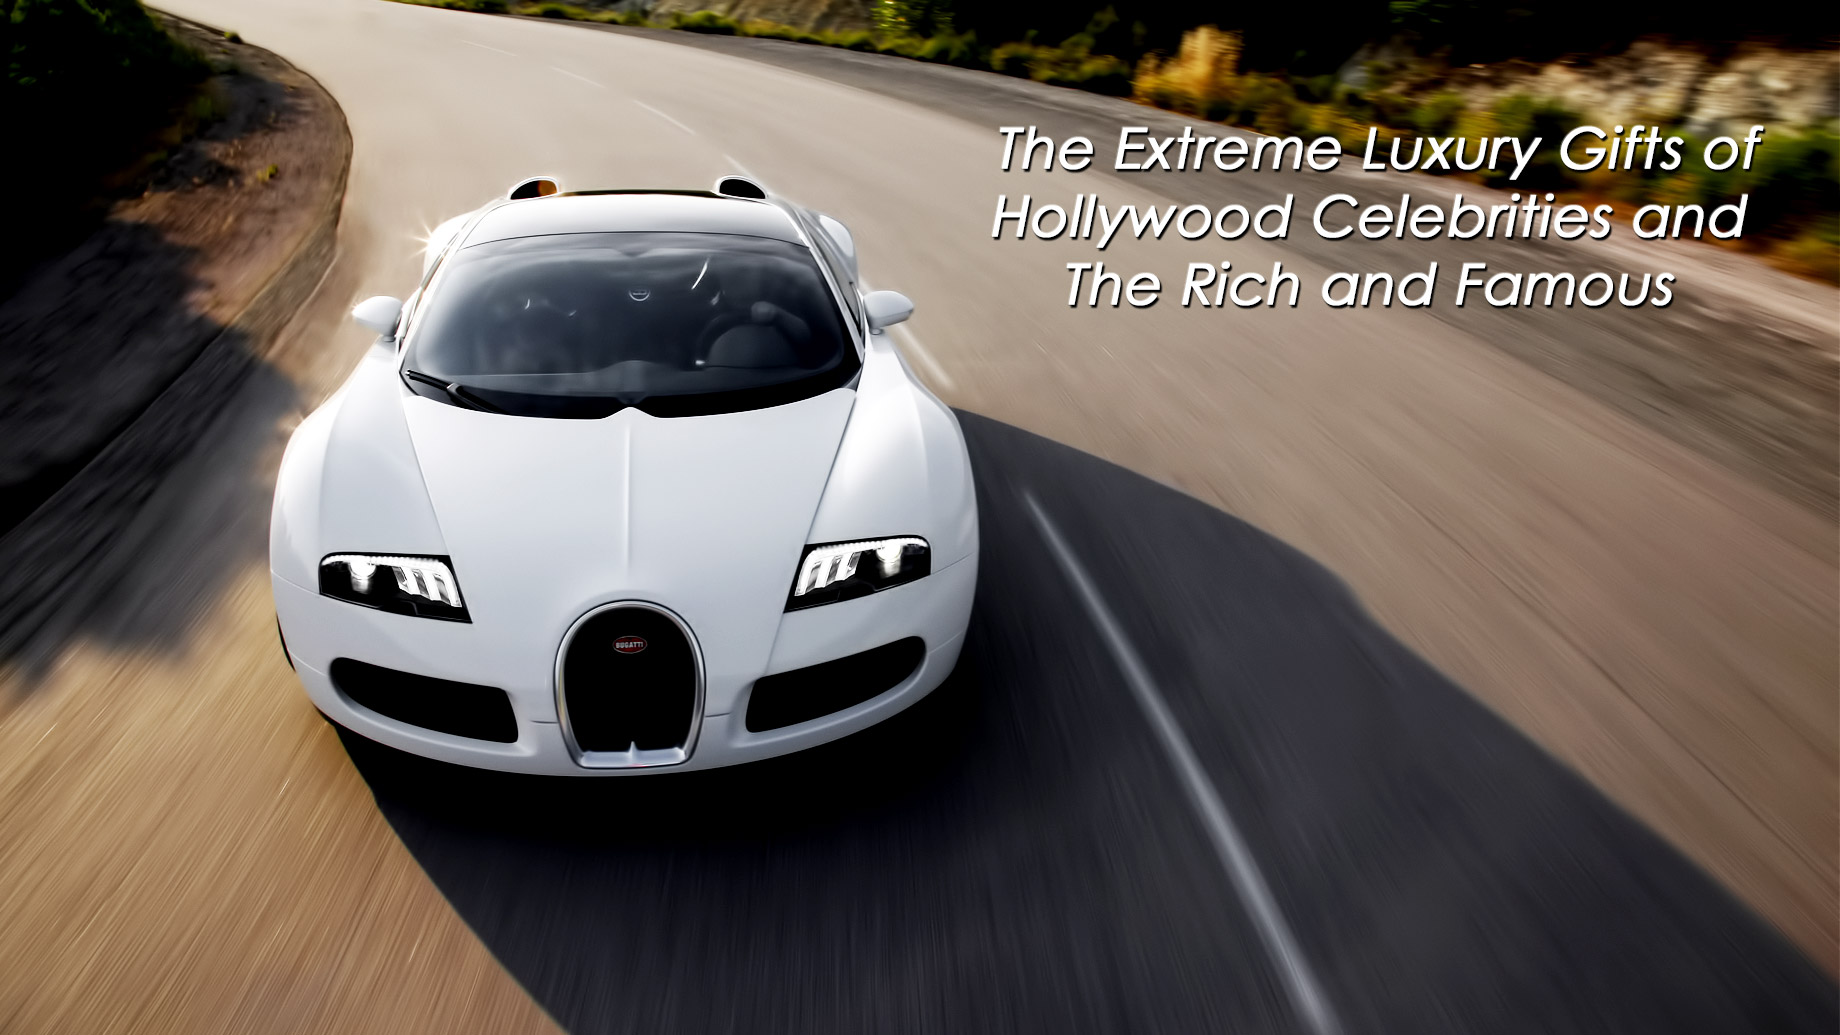 The Extreme Luxury Gifts of Hollywood Celebrities and The Rich and Famous